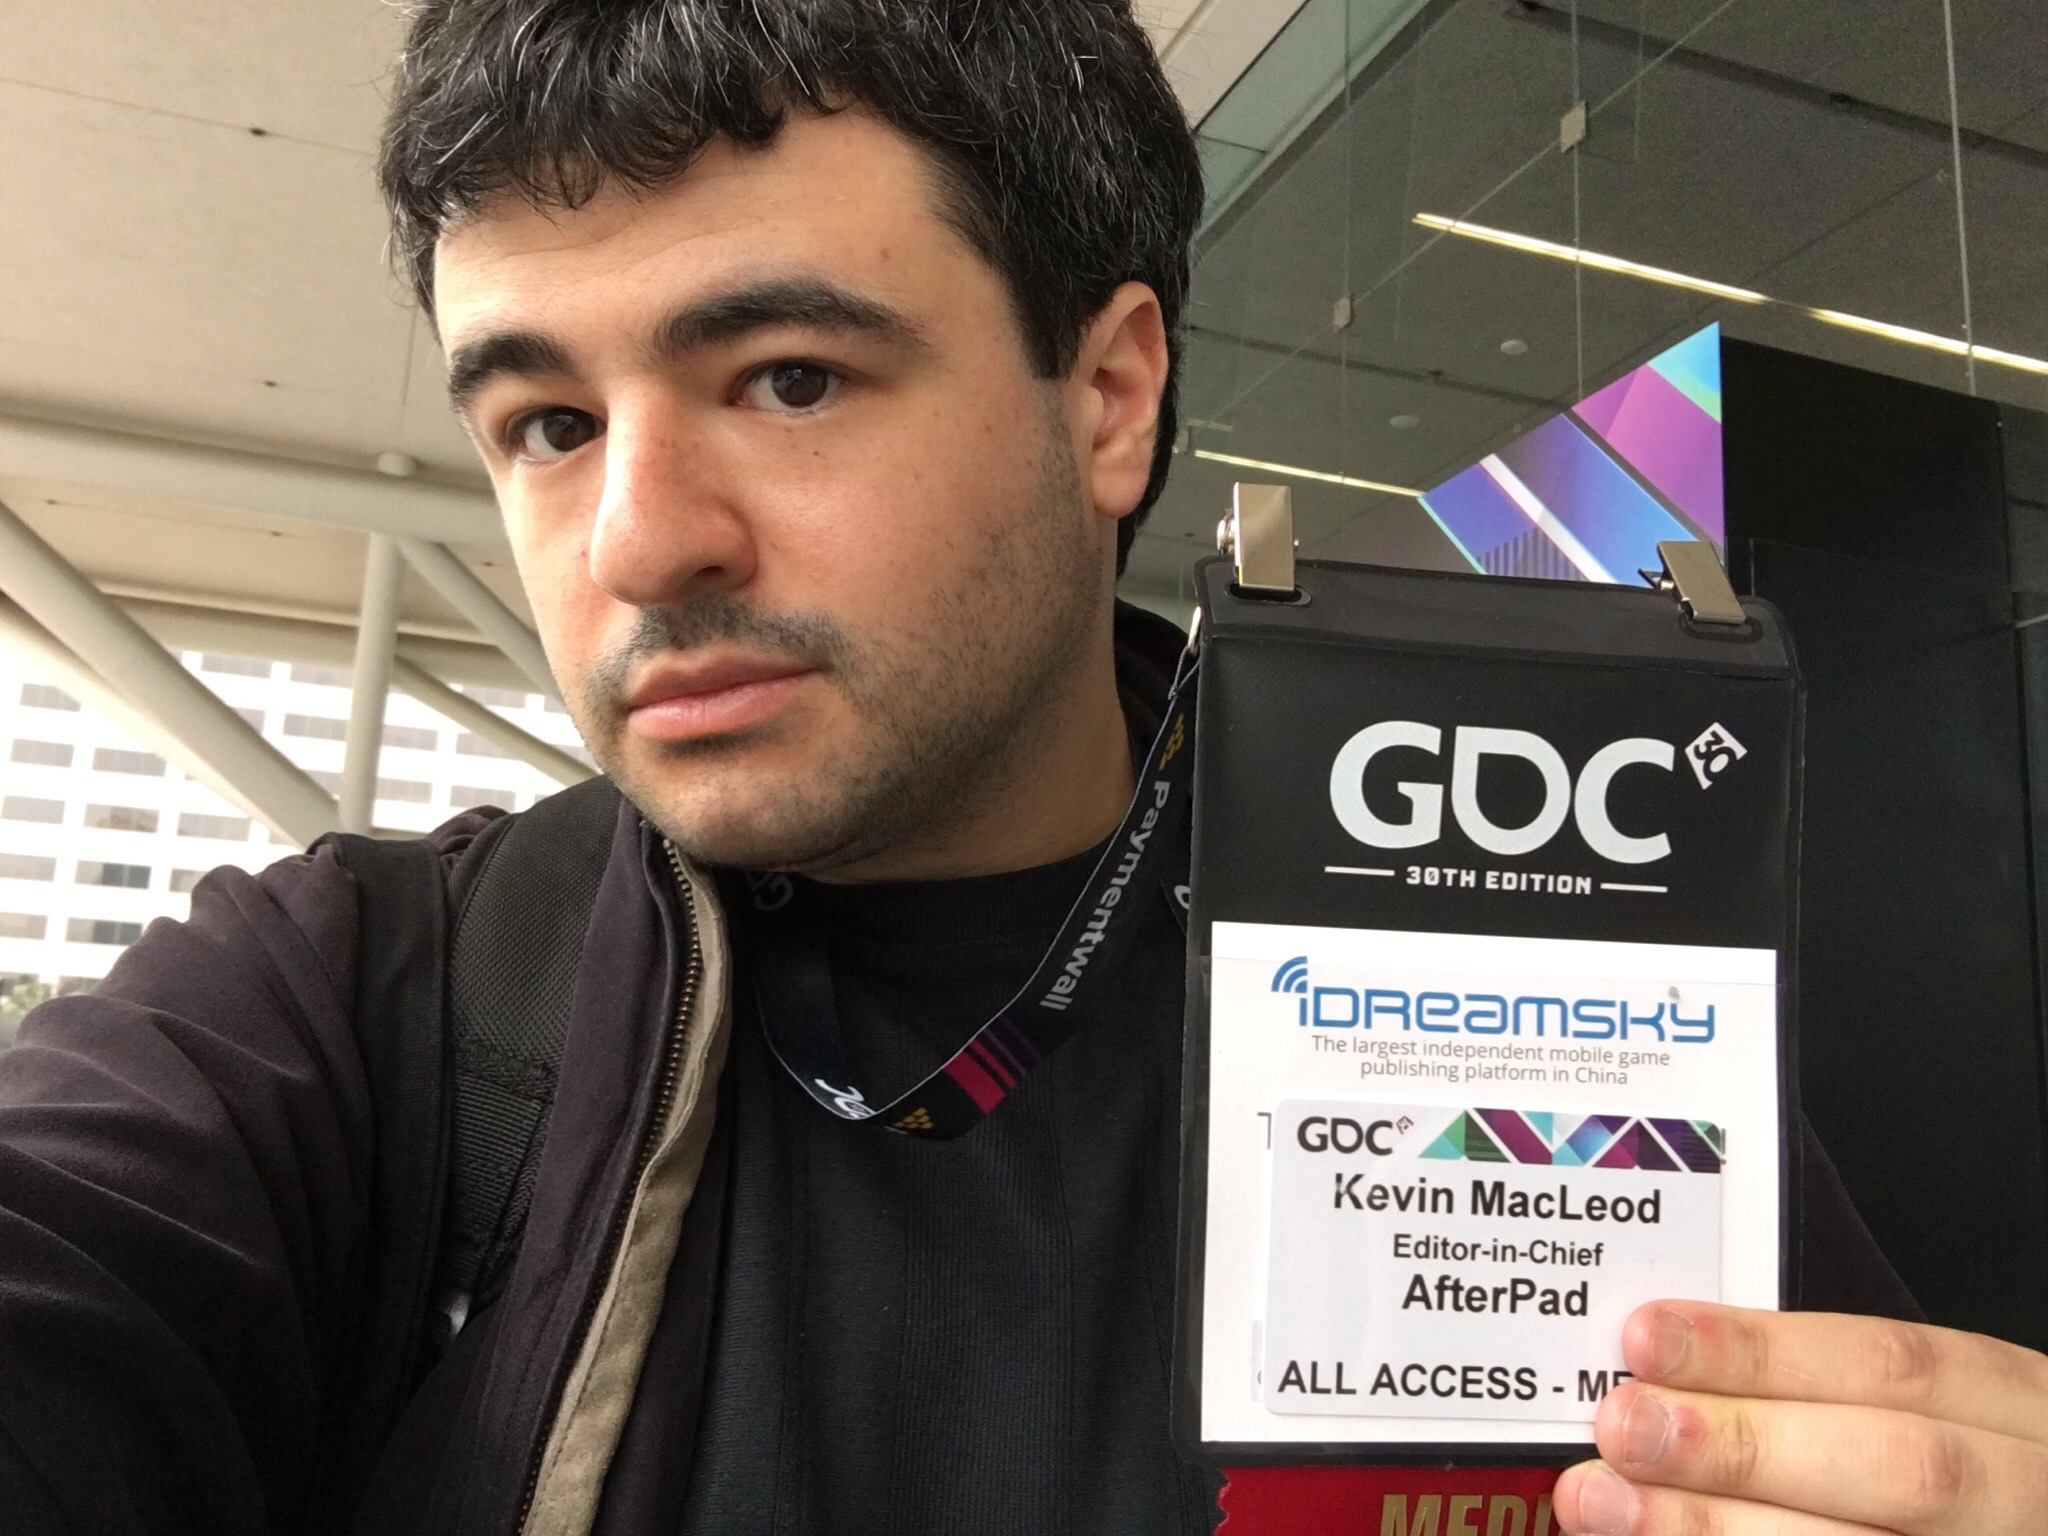 AfterPad is at GDC!